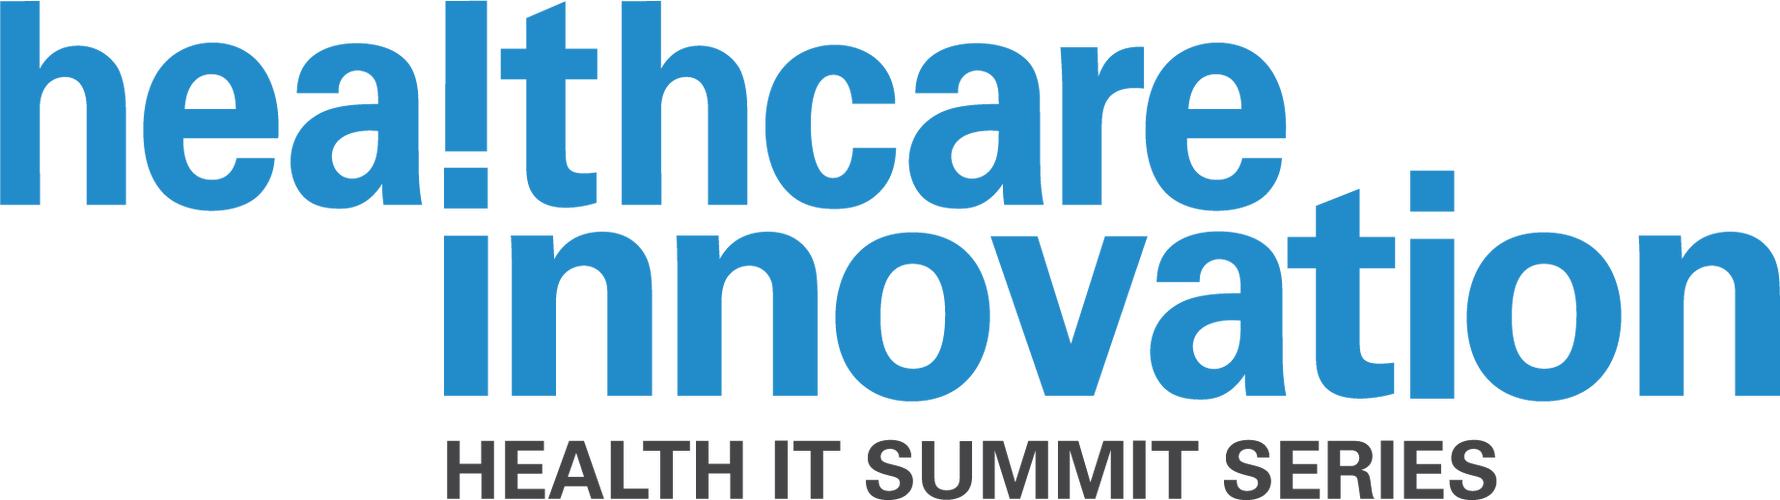 2019 Pacific Northwest Health IT Summit  - Seattle